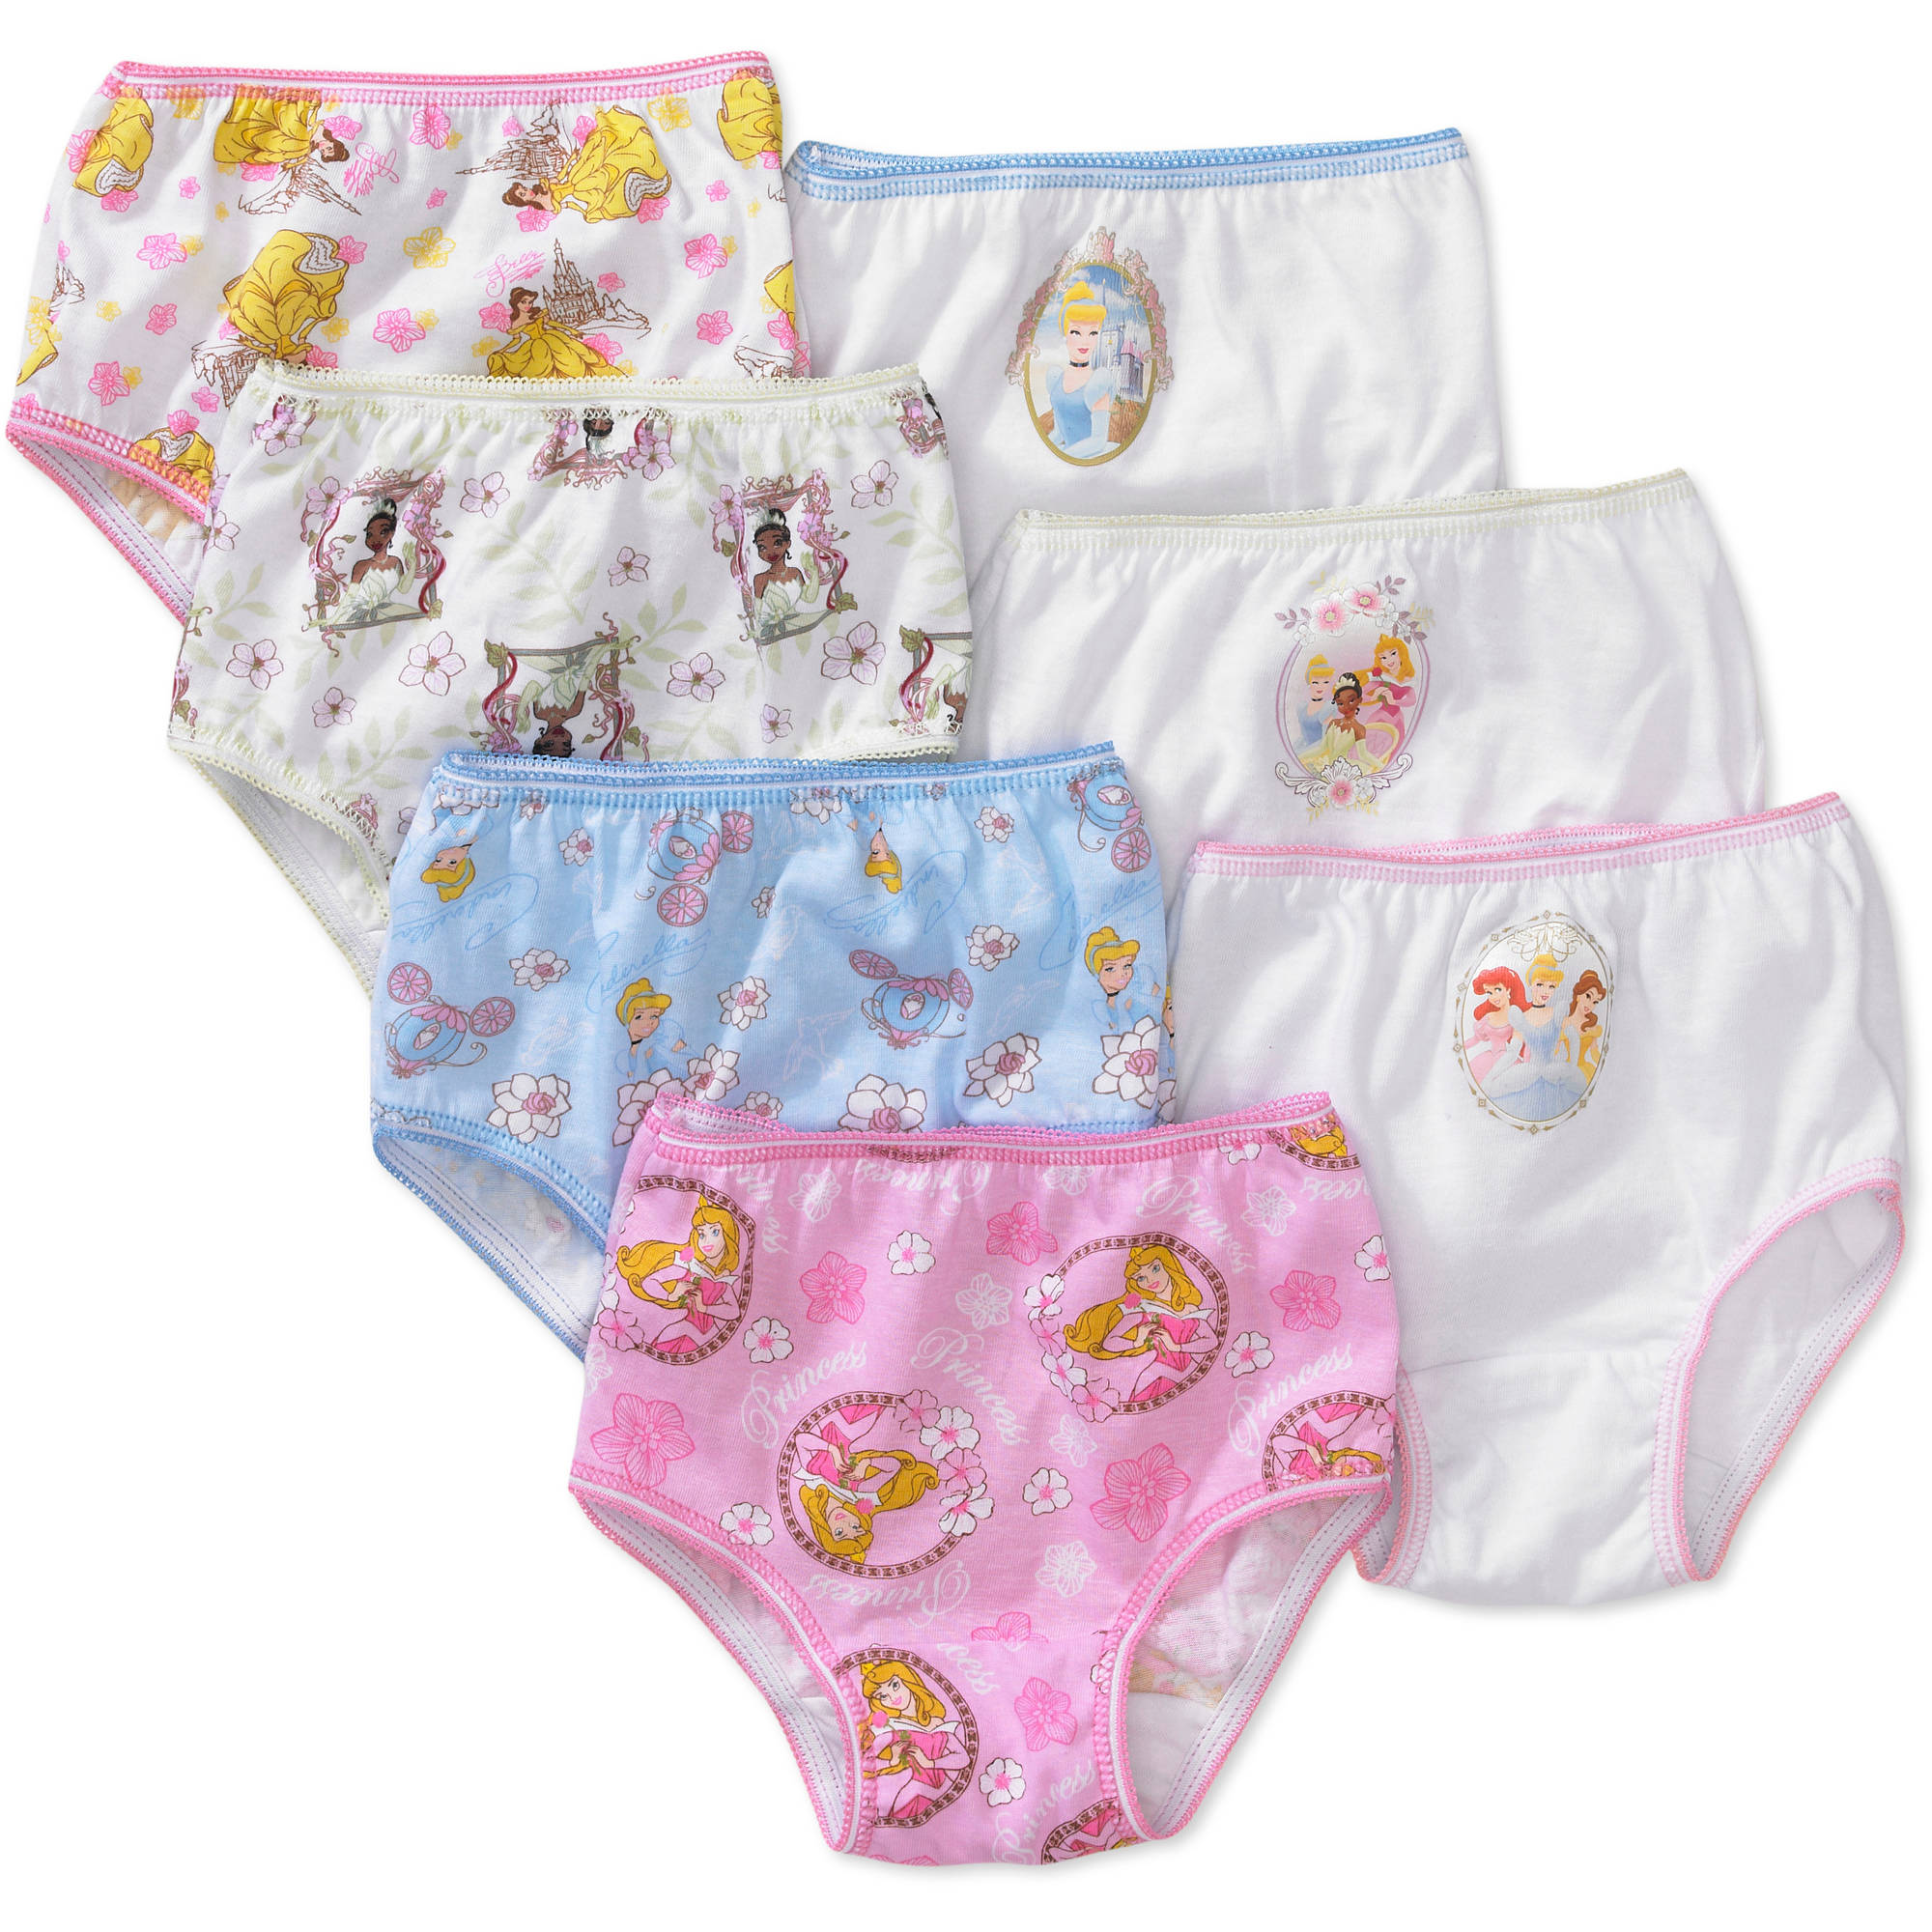 Fruit of the Loom Girls Toddler Brief Pack of Seven